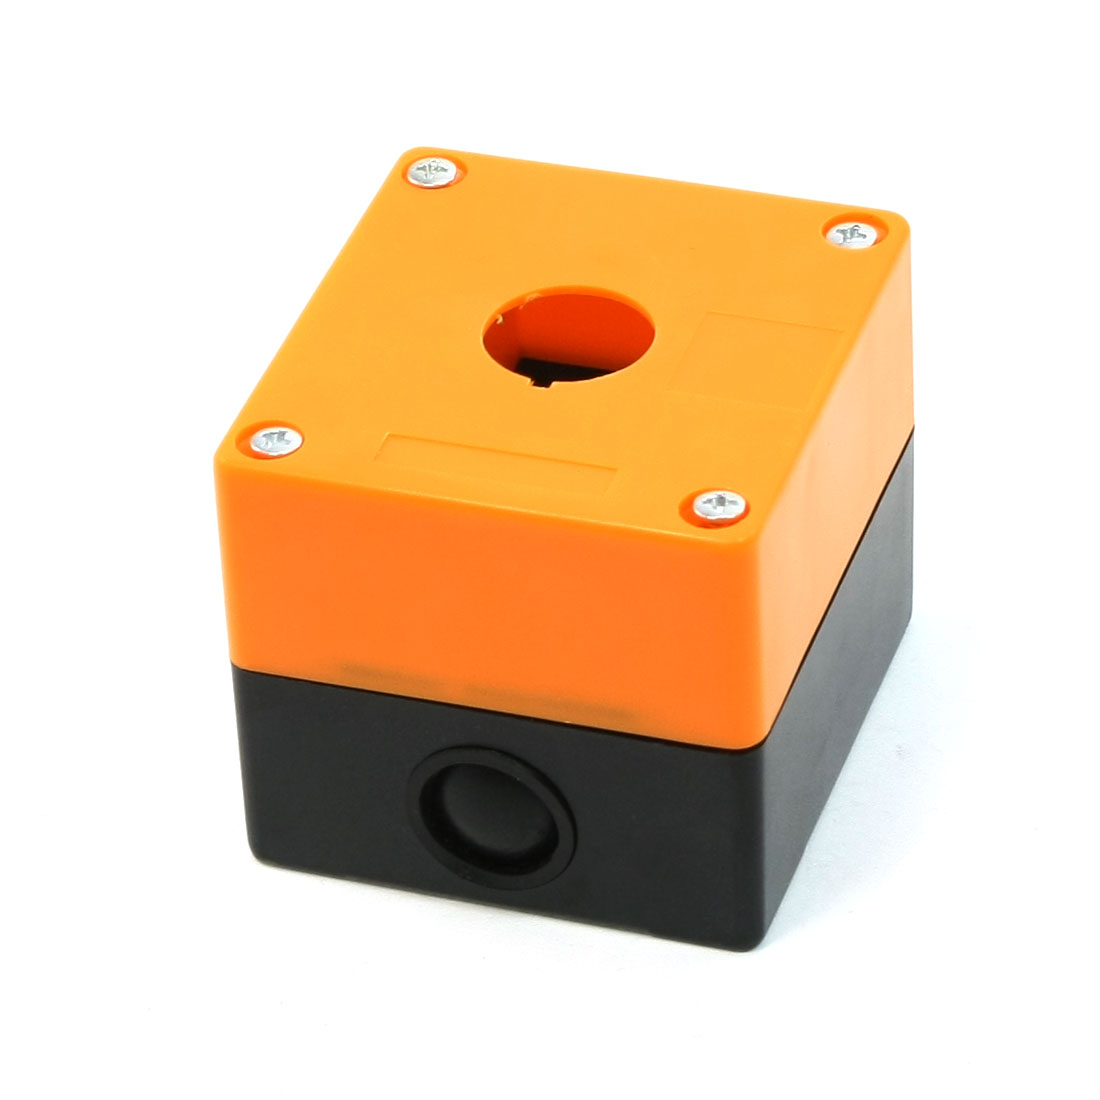 Black Orange Plastic Controlling Station 1 Hole Push Button Swith Case Box